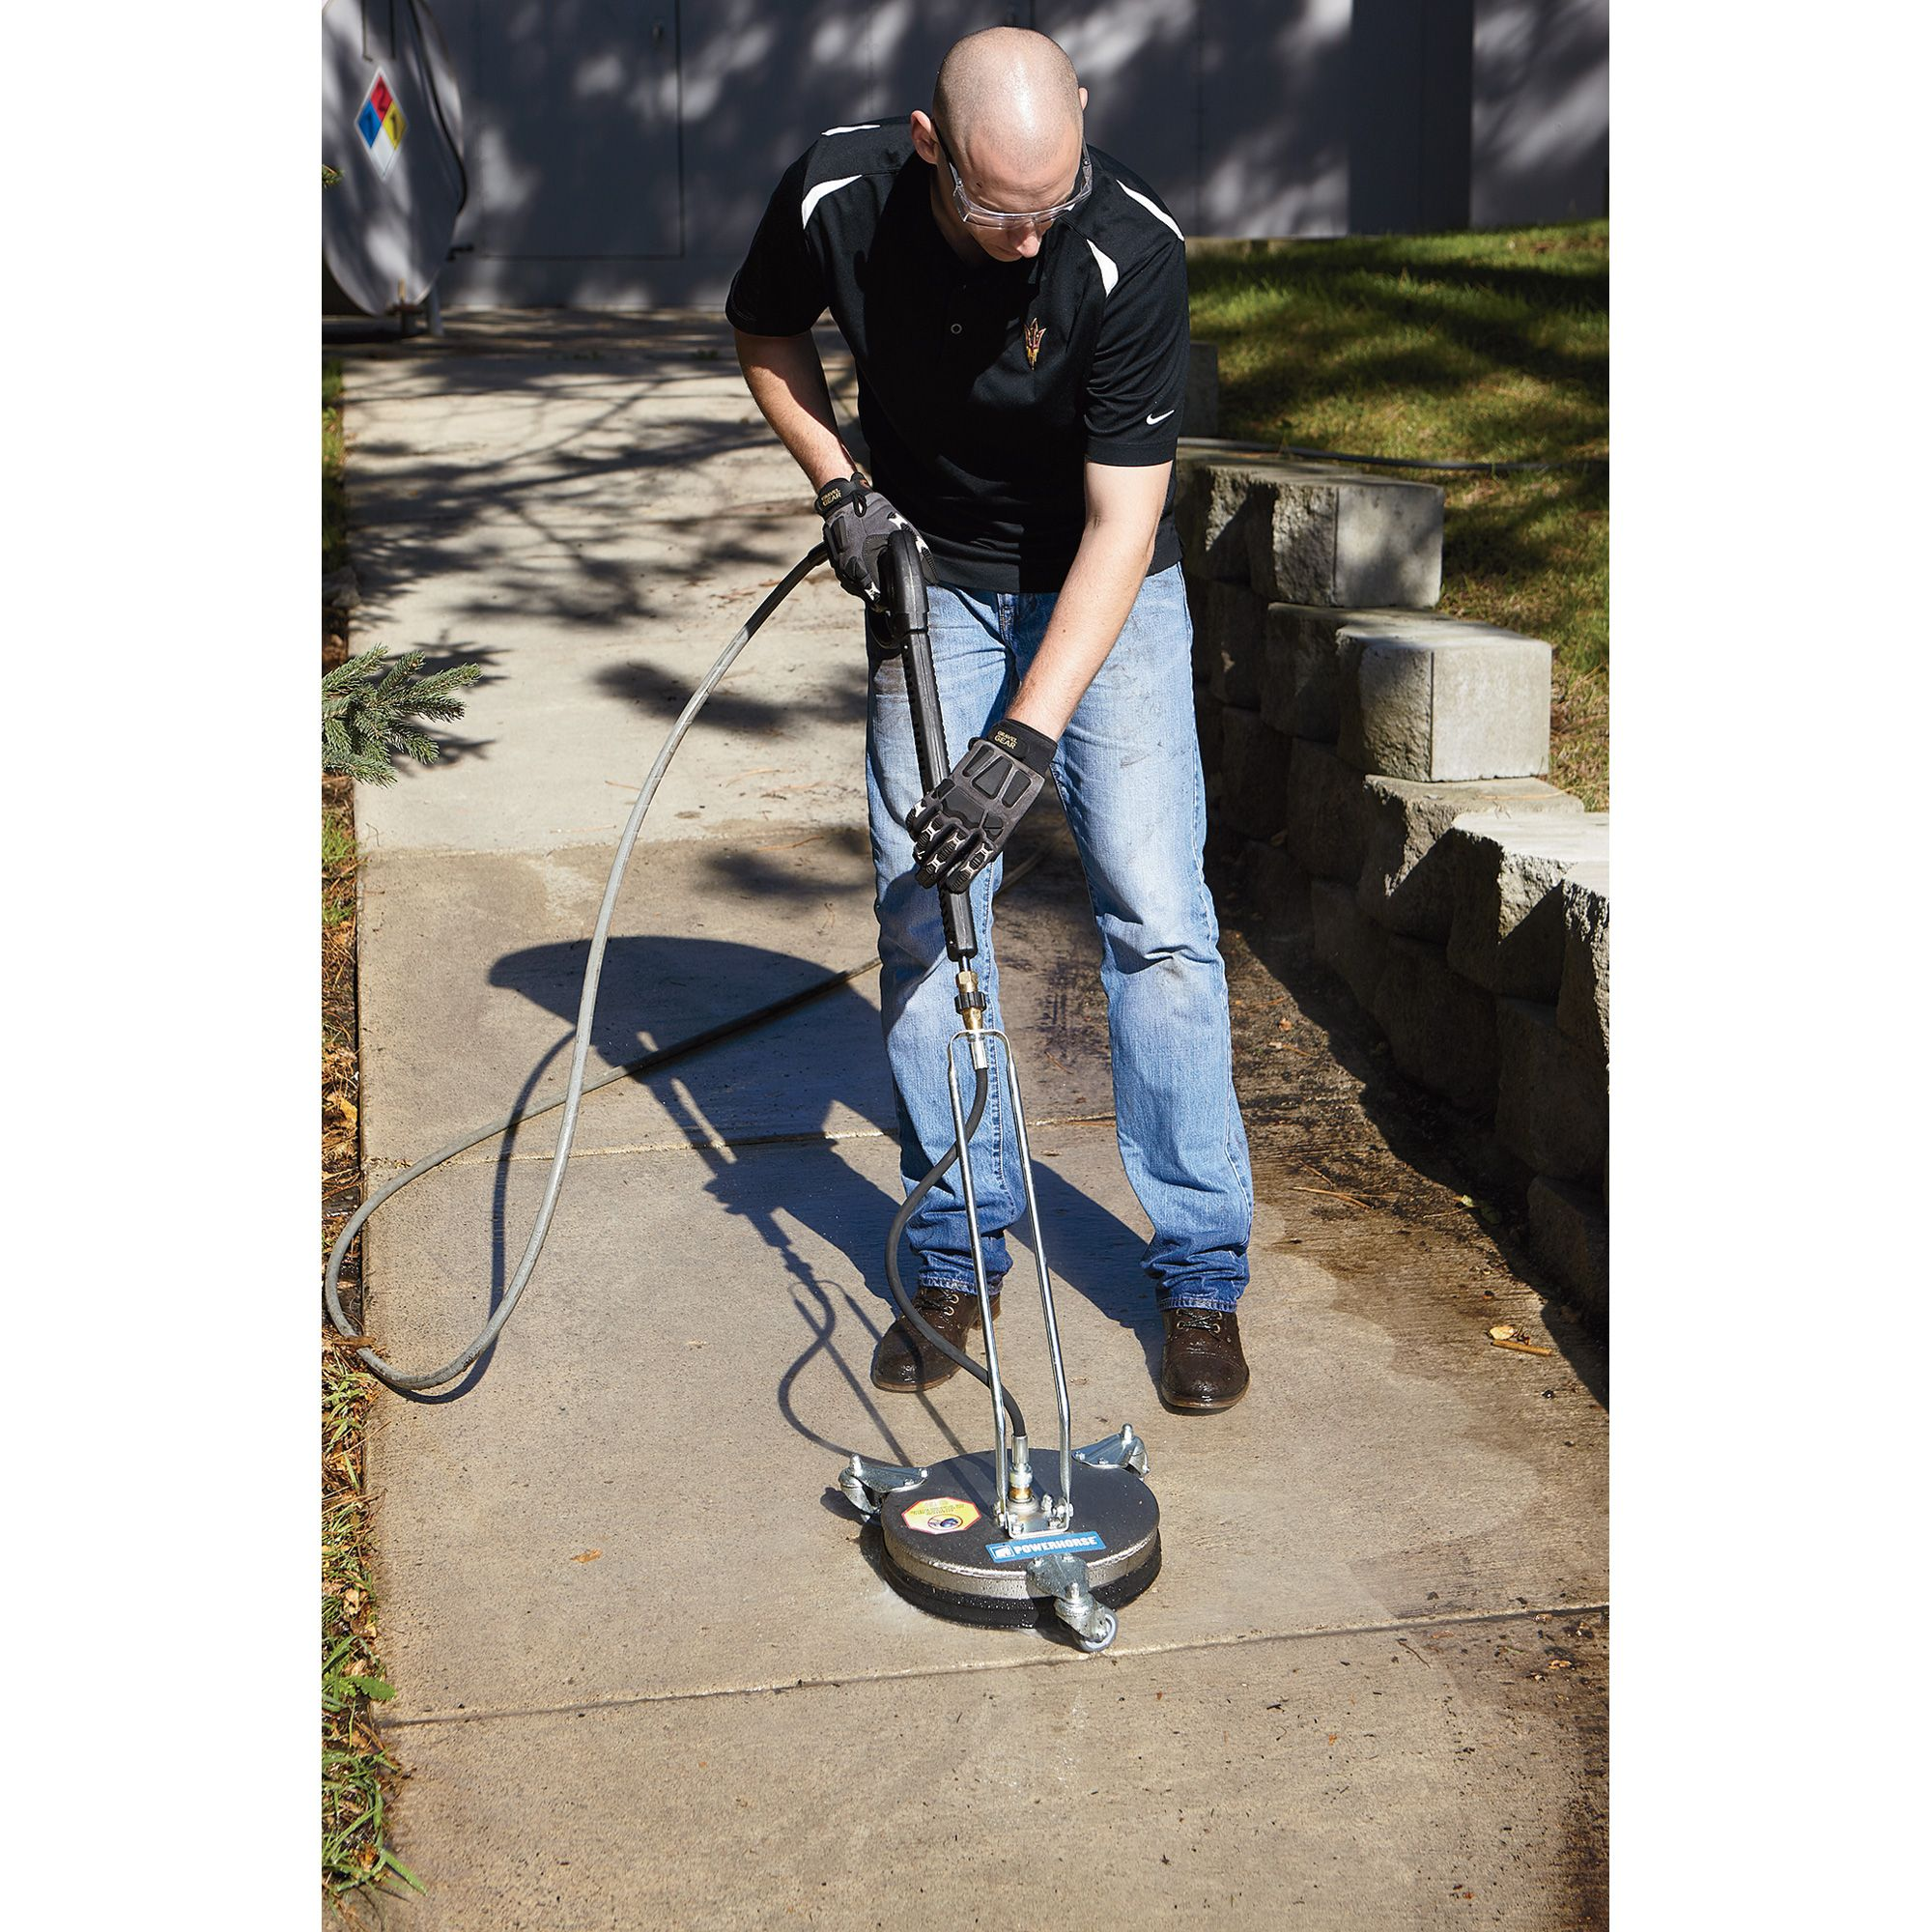 Powerhorse Pressure Washer Surface Cleaner — 12in  Dia , 3000 PSI